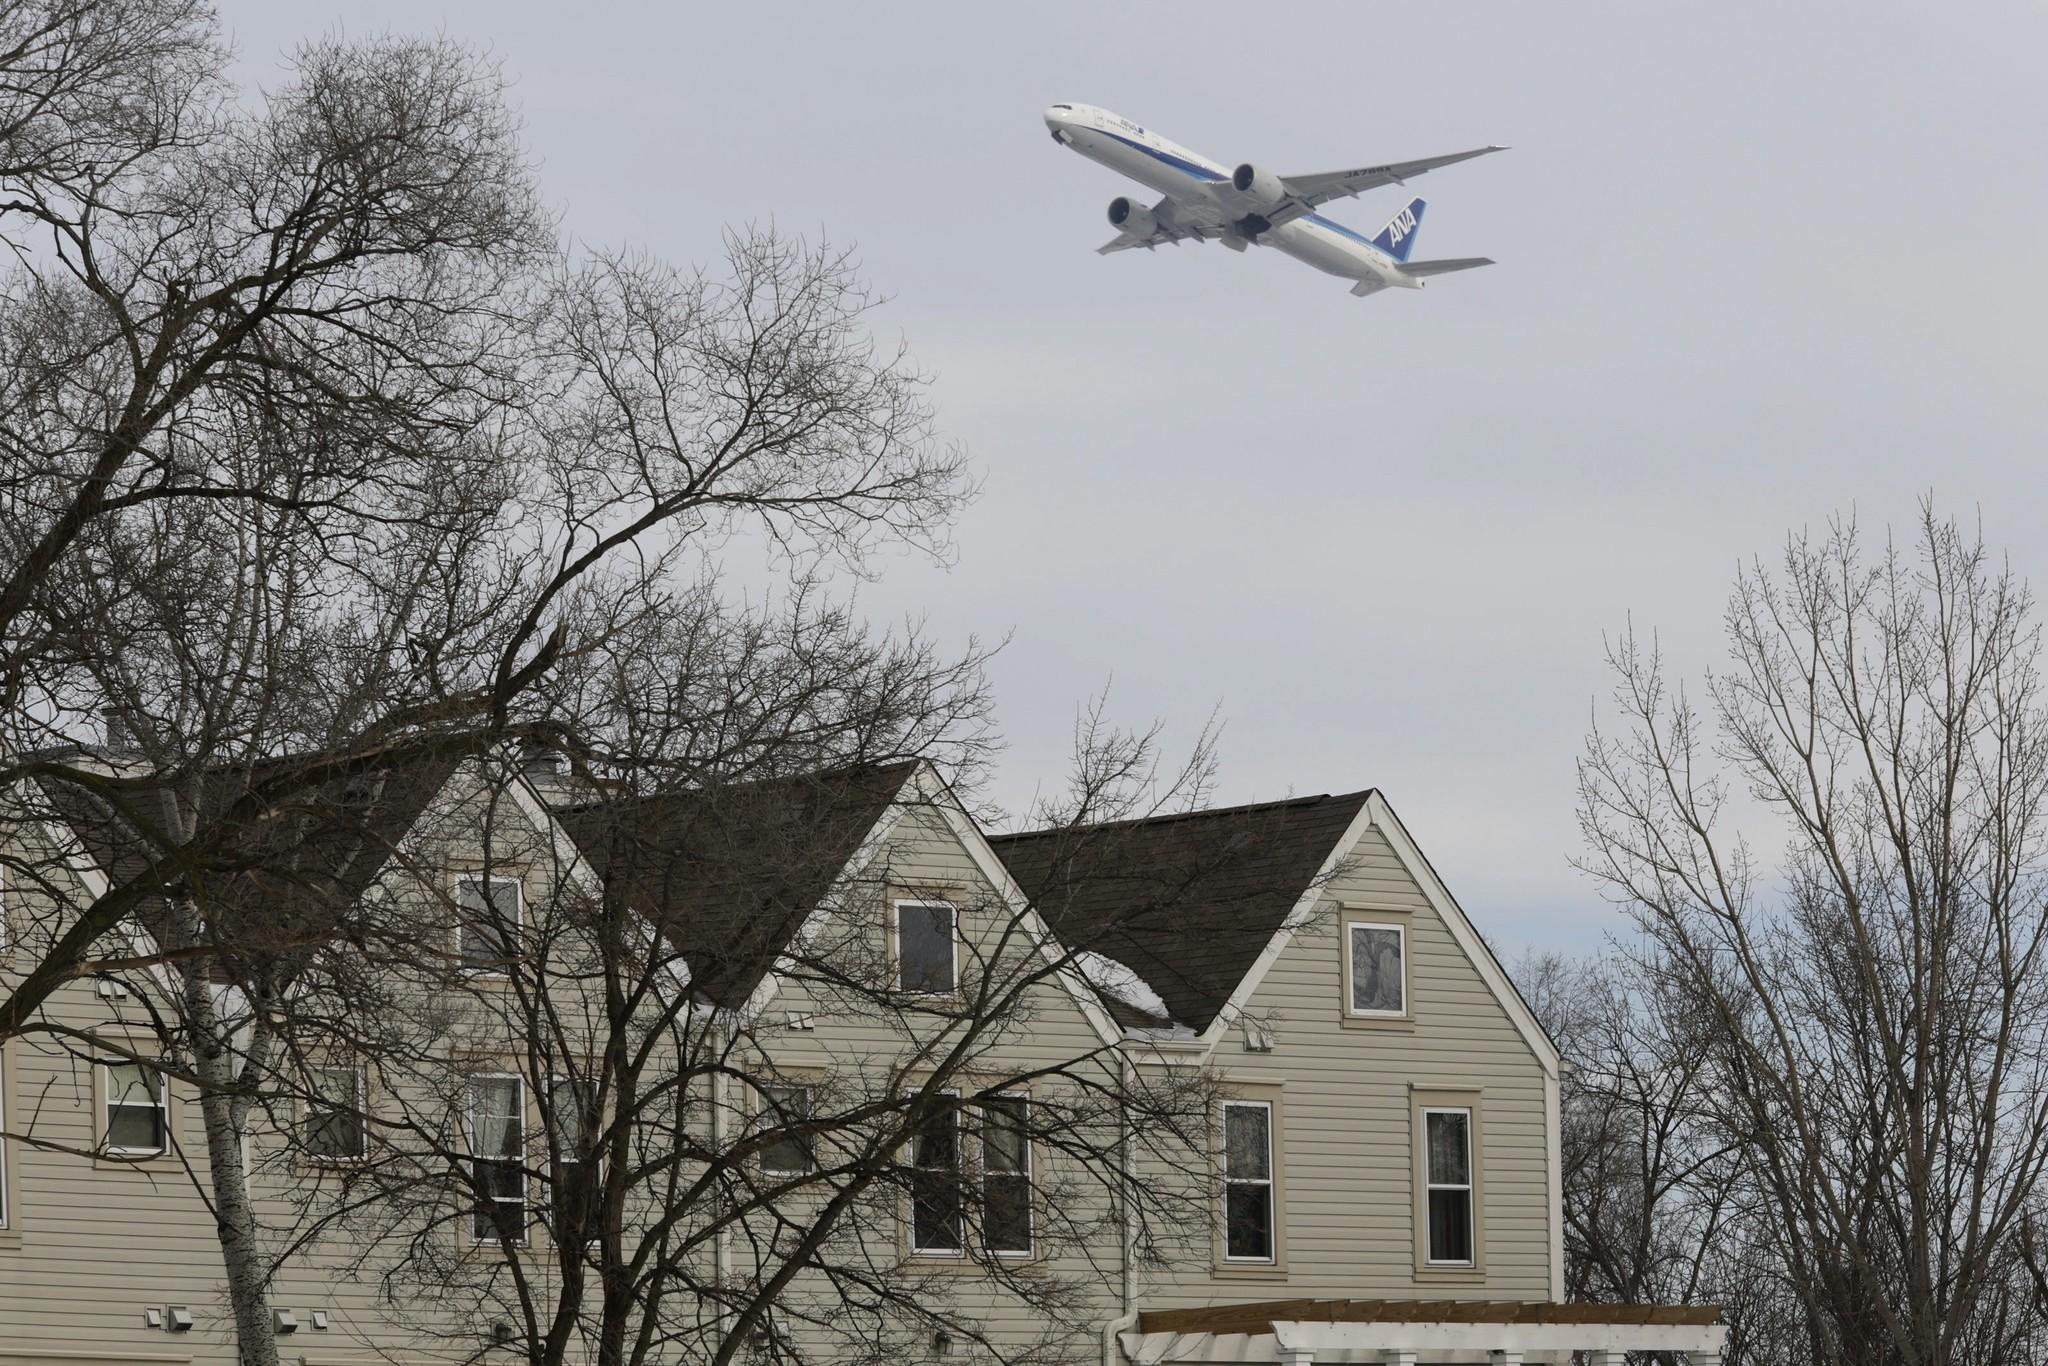 A jet heads west from O'Hare over homes in Bensenville in January. Bensenville registered some of the most noise complaints in November 2013.